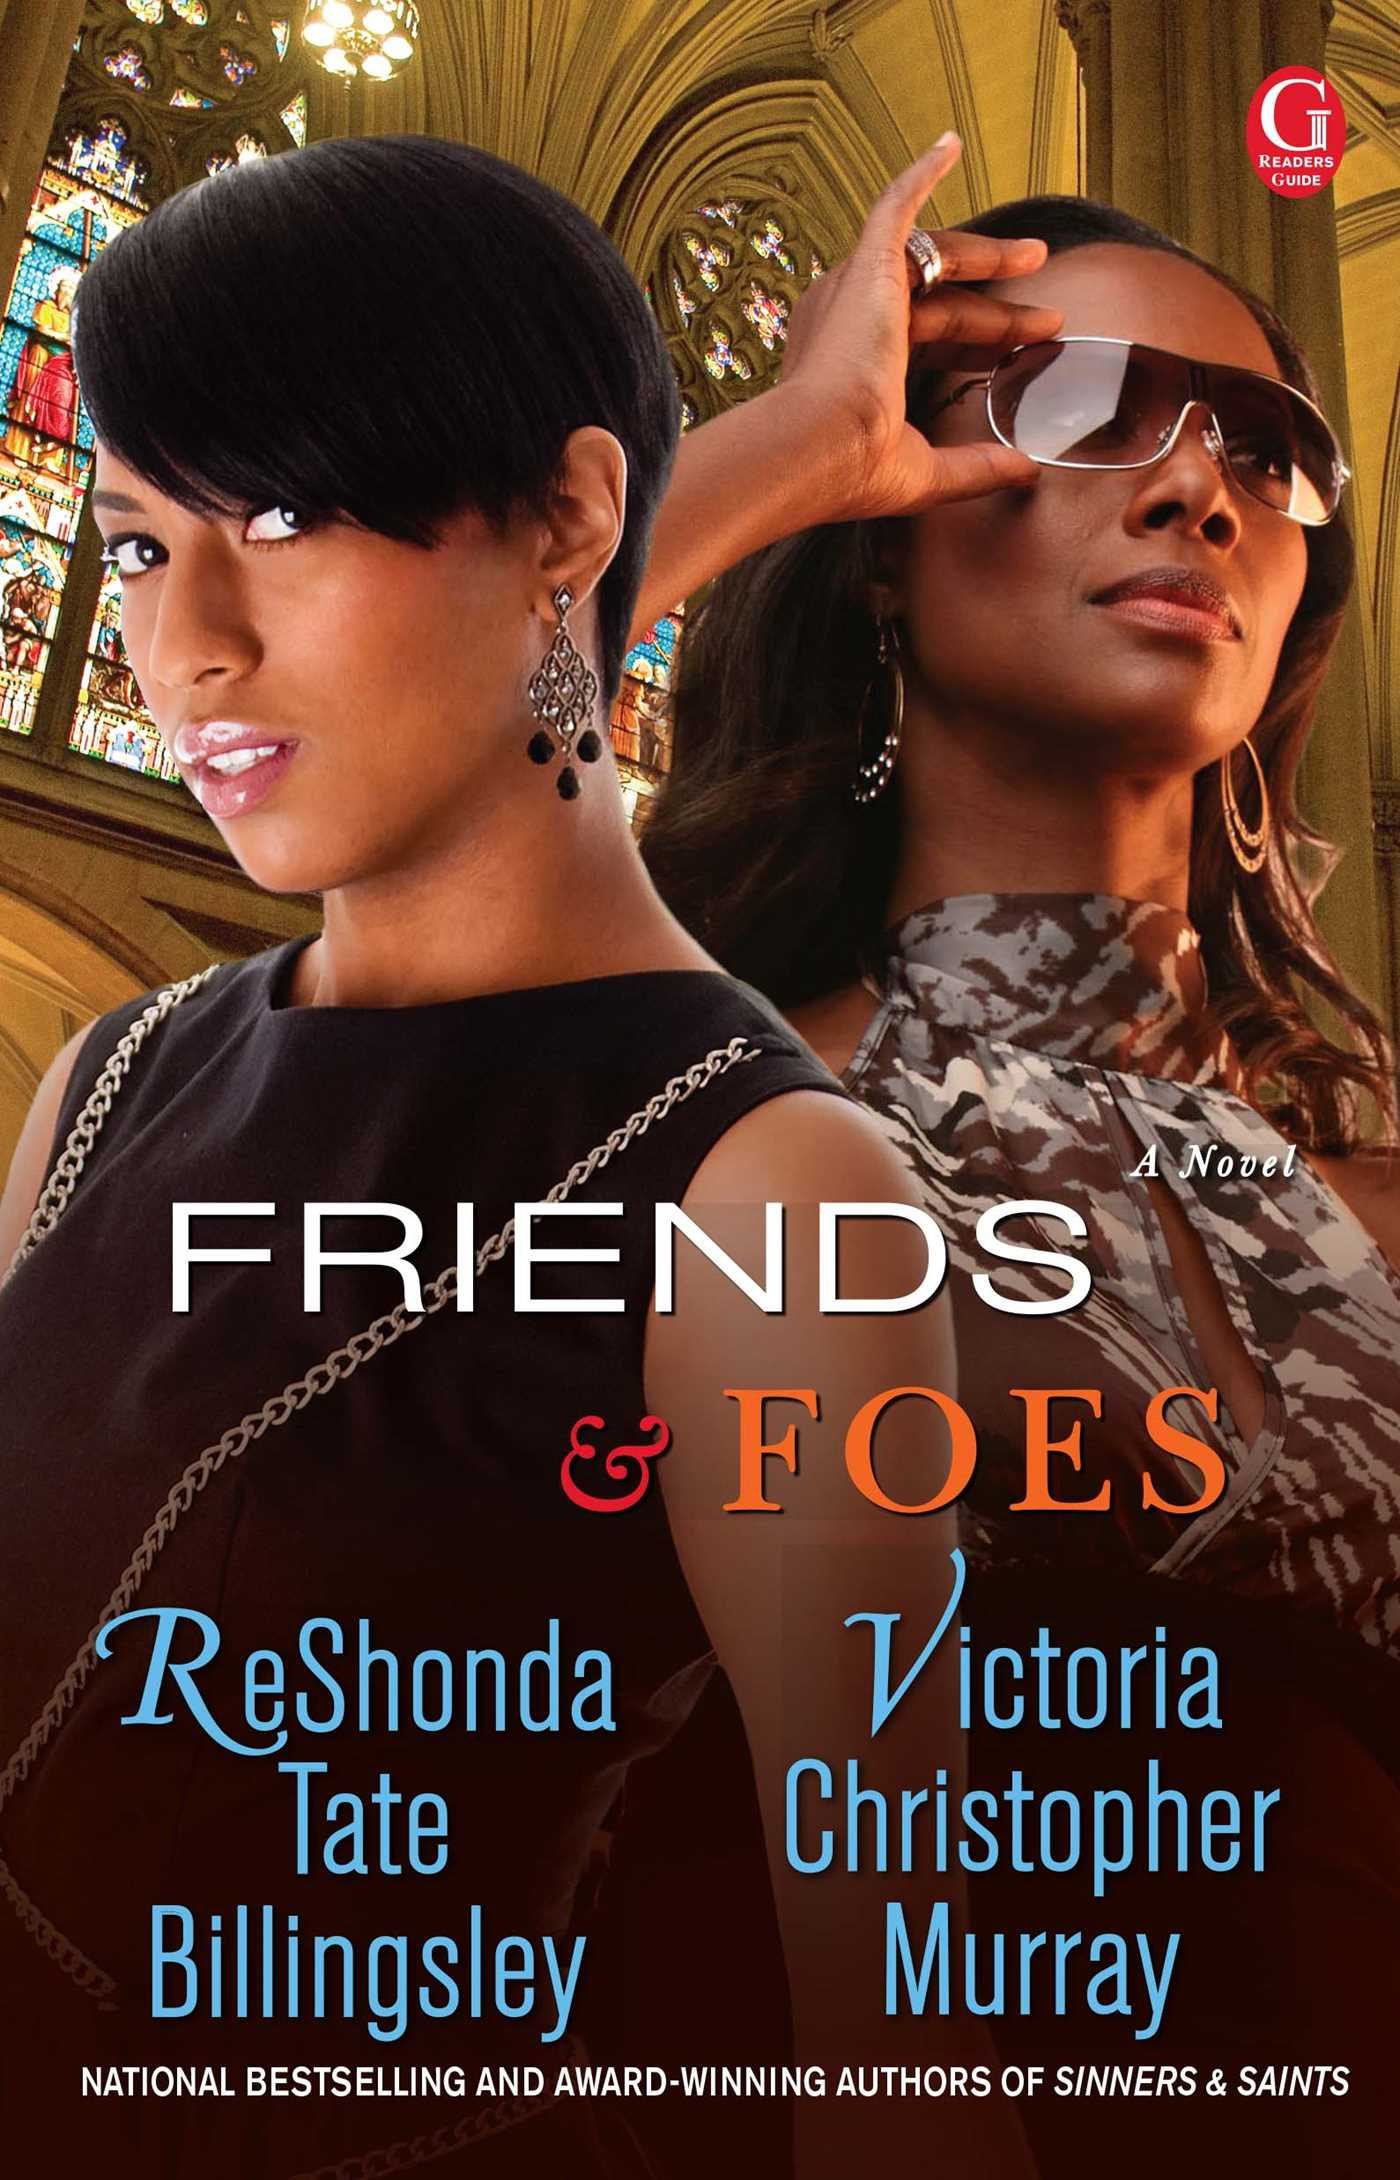 Friends-foes-9781451608168_hr